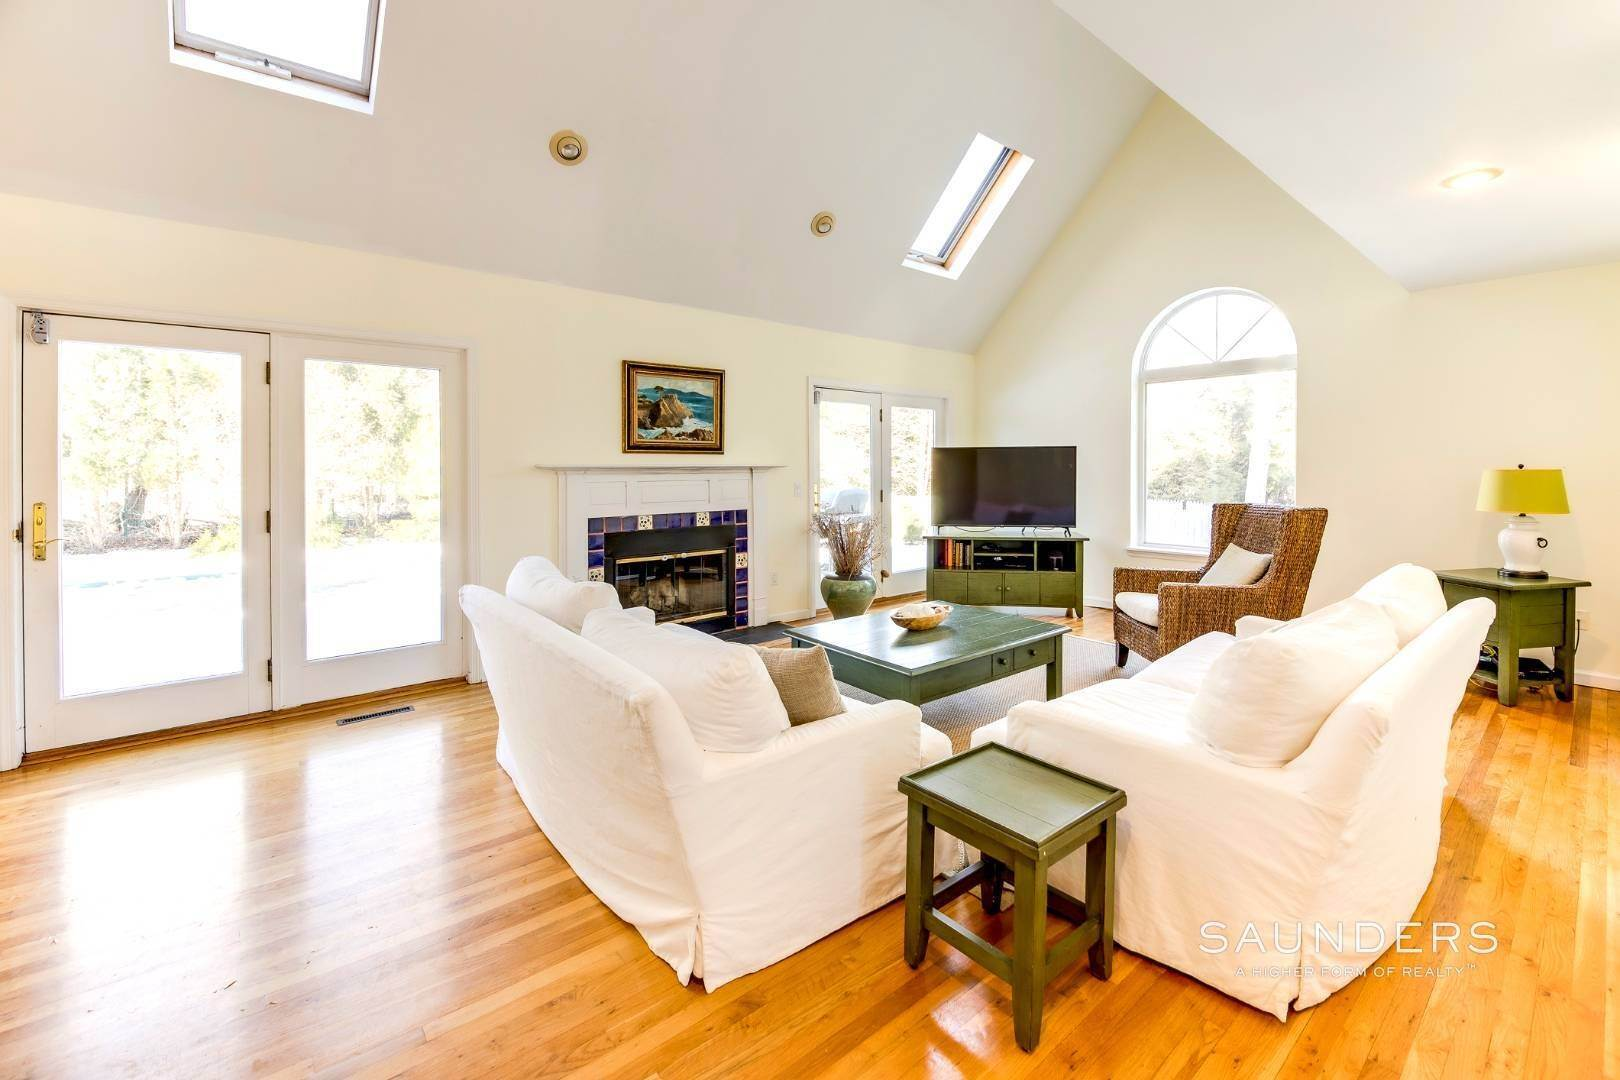 4. Single Family Homes for Sale at Village Edge Traditional 19 Boxwood Street, East Hampton, East Hampton Town, NY 11937